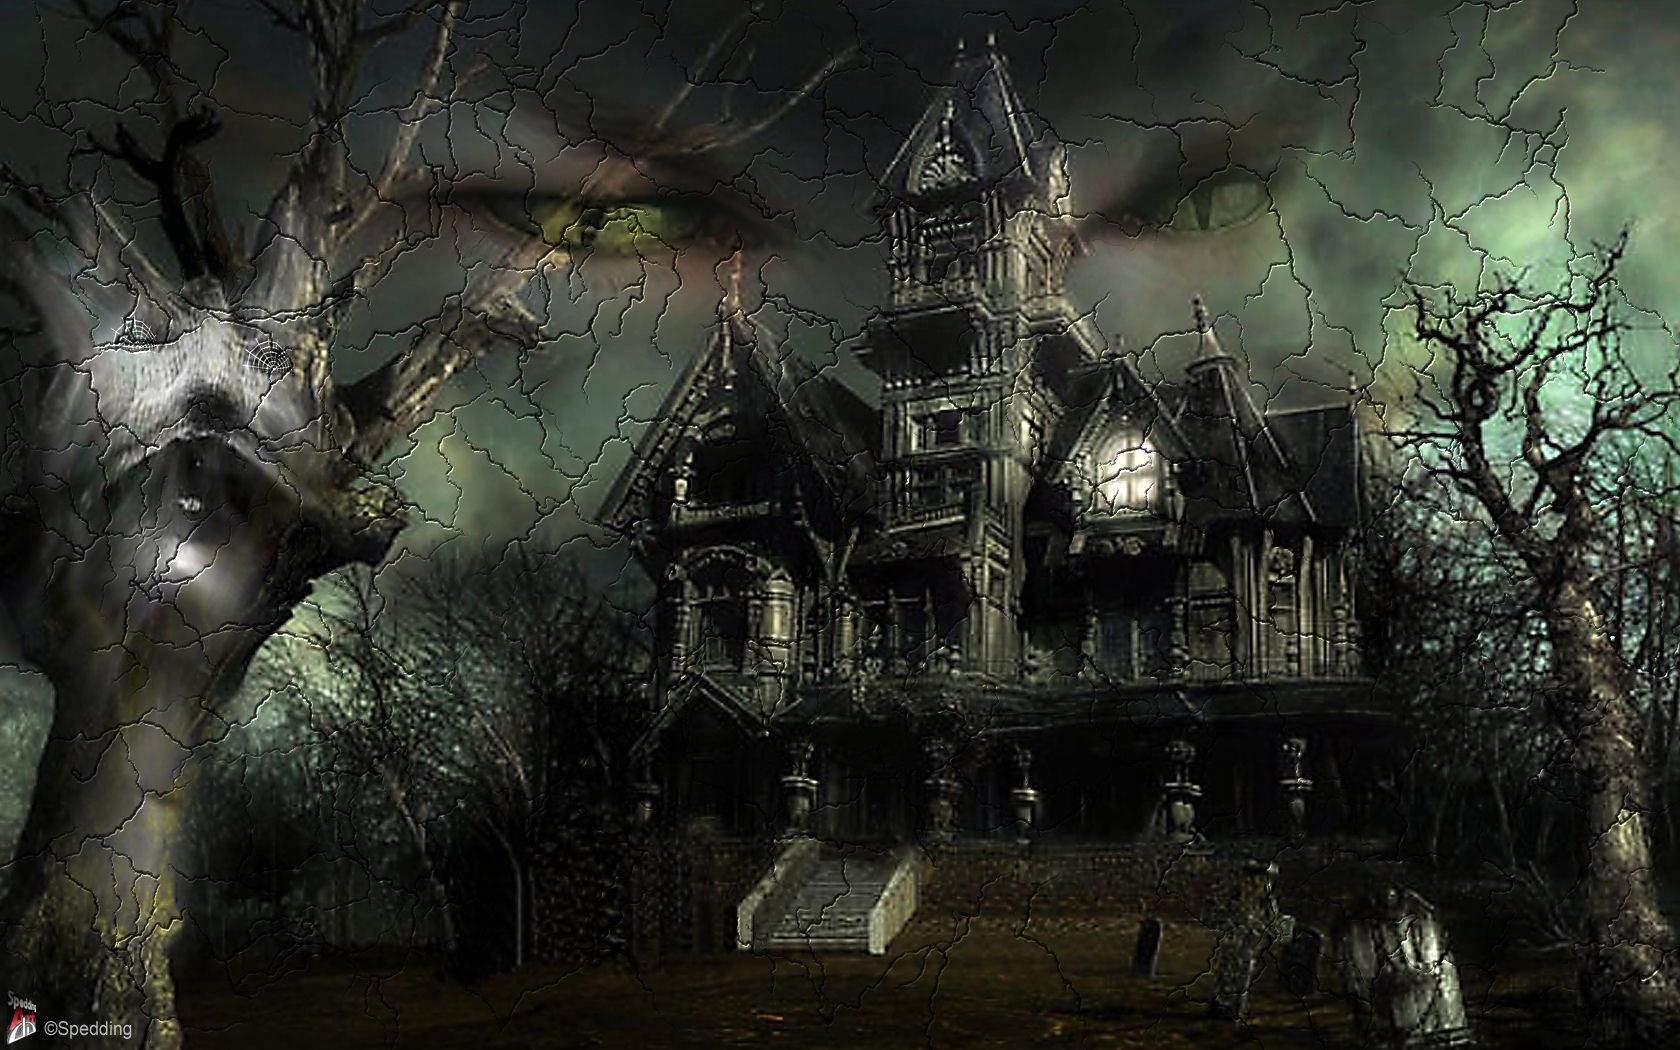 1680x1050 - Scary Halloween Background 29